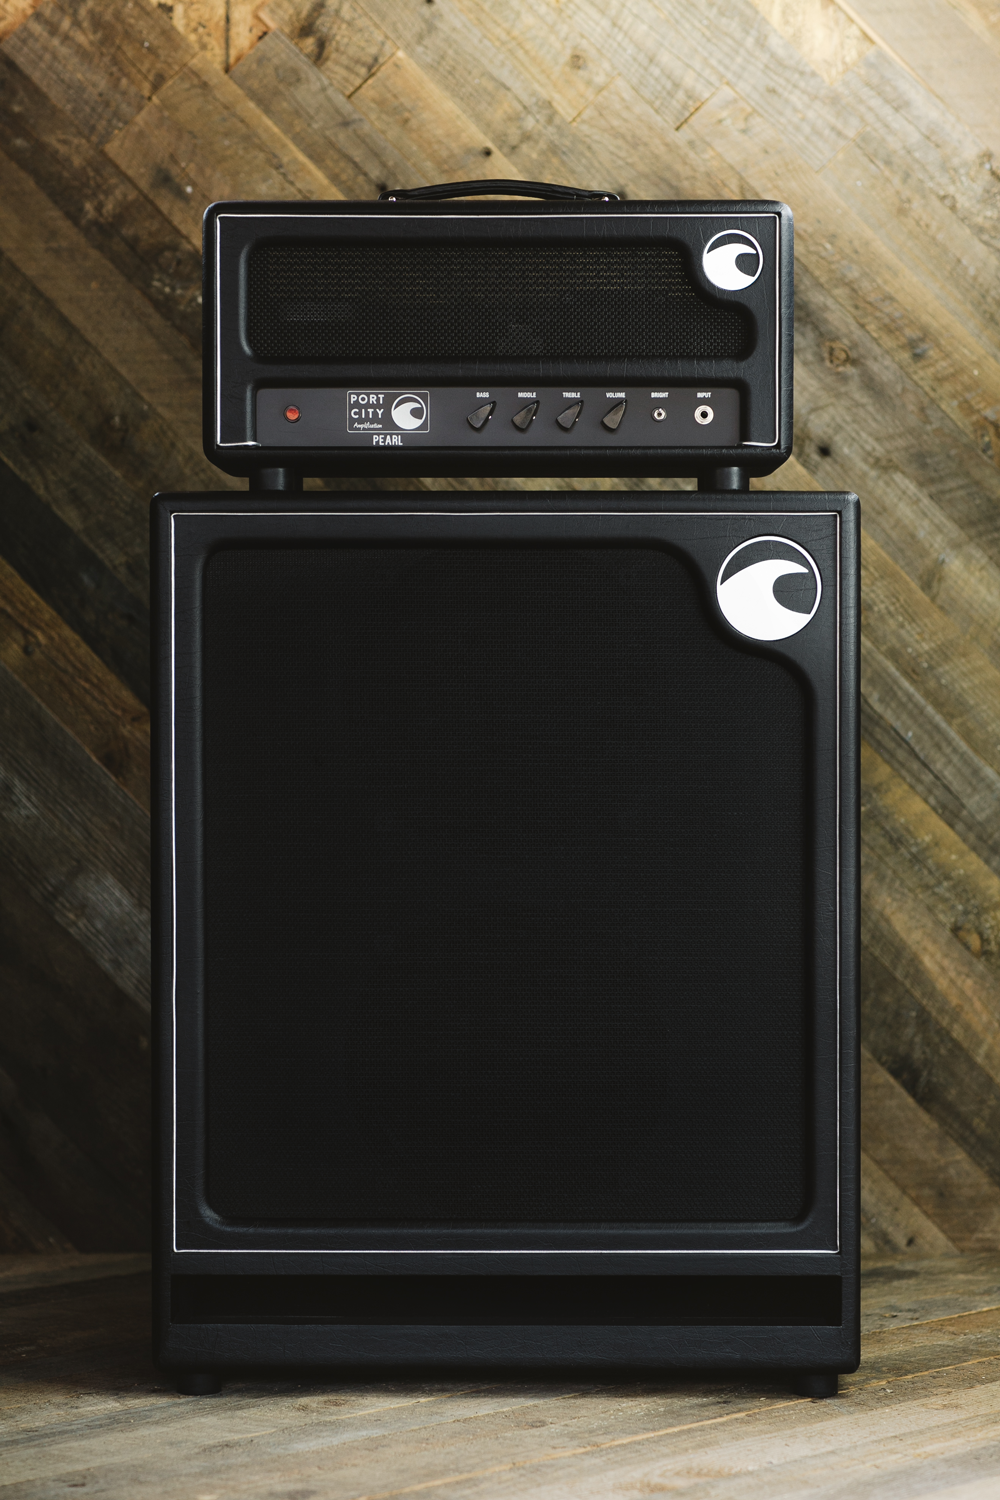 PortCity Product 54?format=500w 2x12 os vertical wave cabinet port city amplification boutique wiring diagram 2x12 speaker cab at readyjetset.co